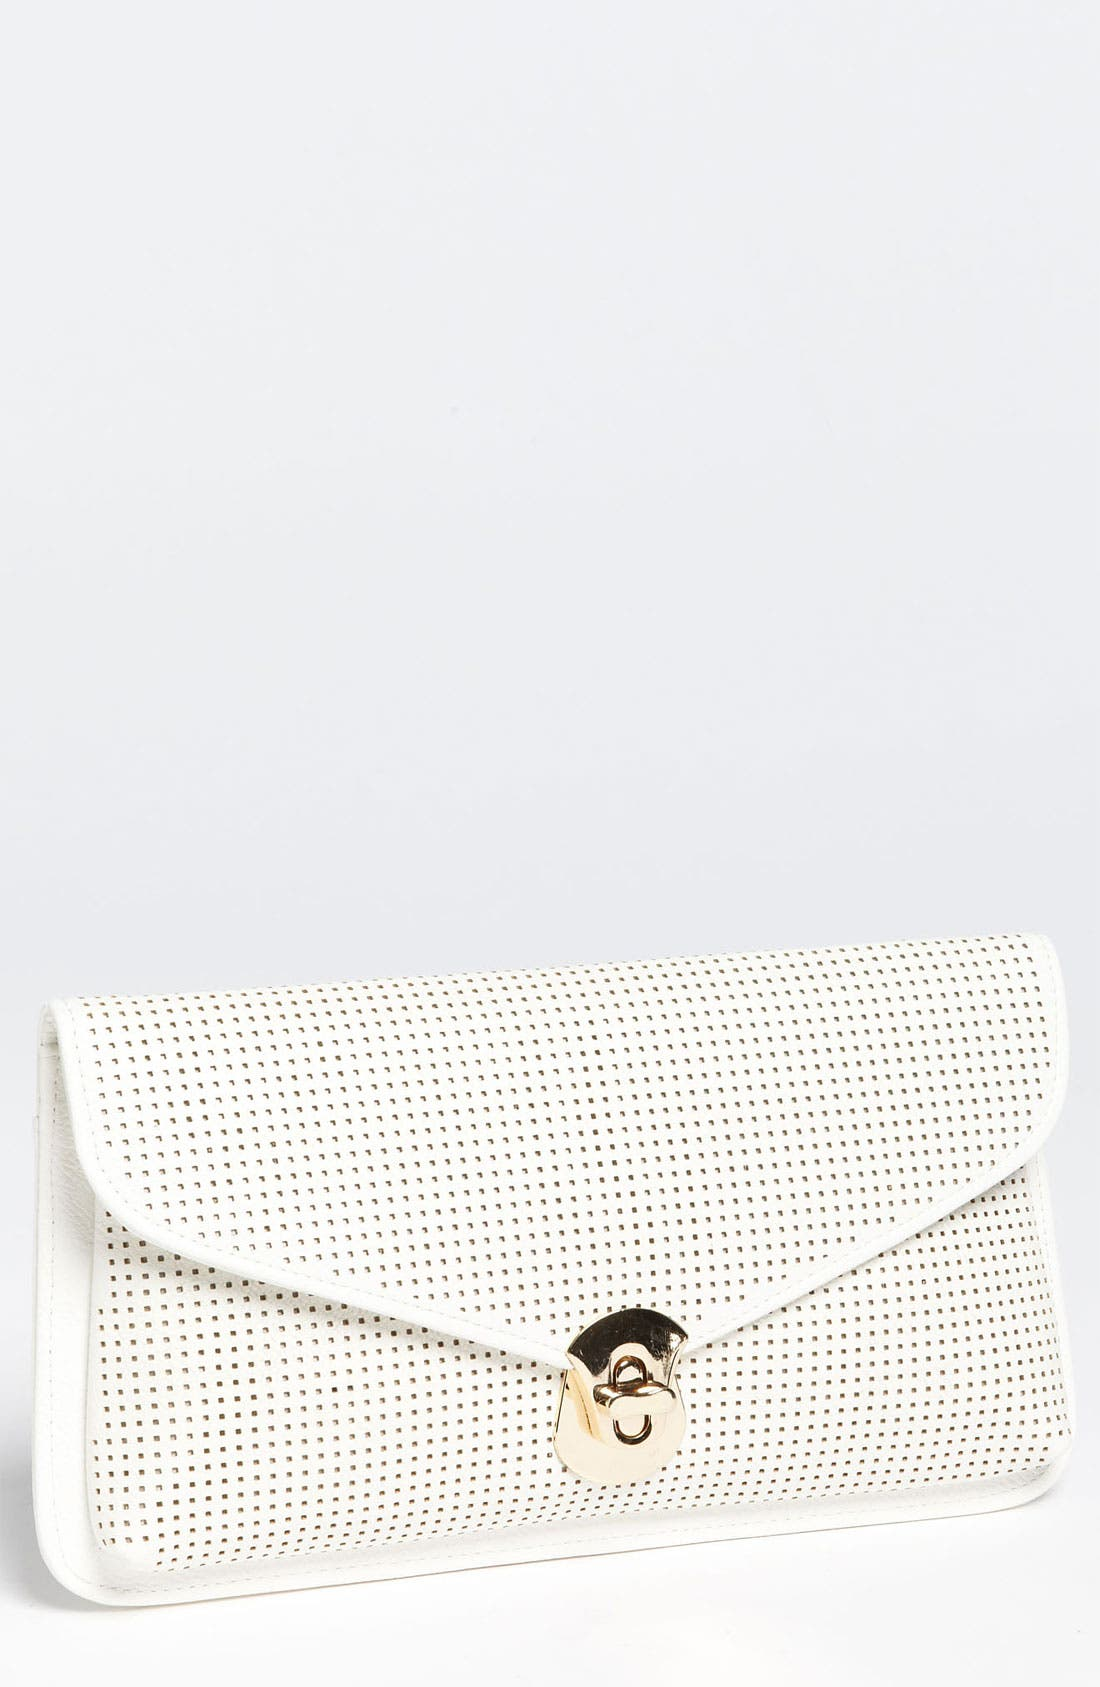 Alternate Image 1 Selected - Urban Expressions Handbags Perforated Clutch